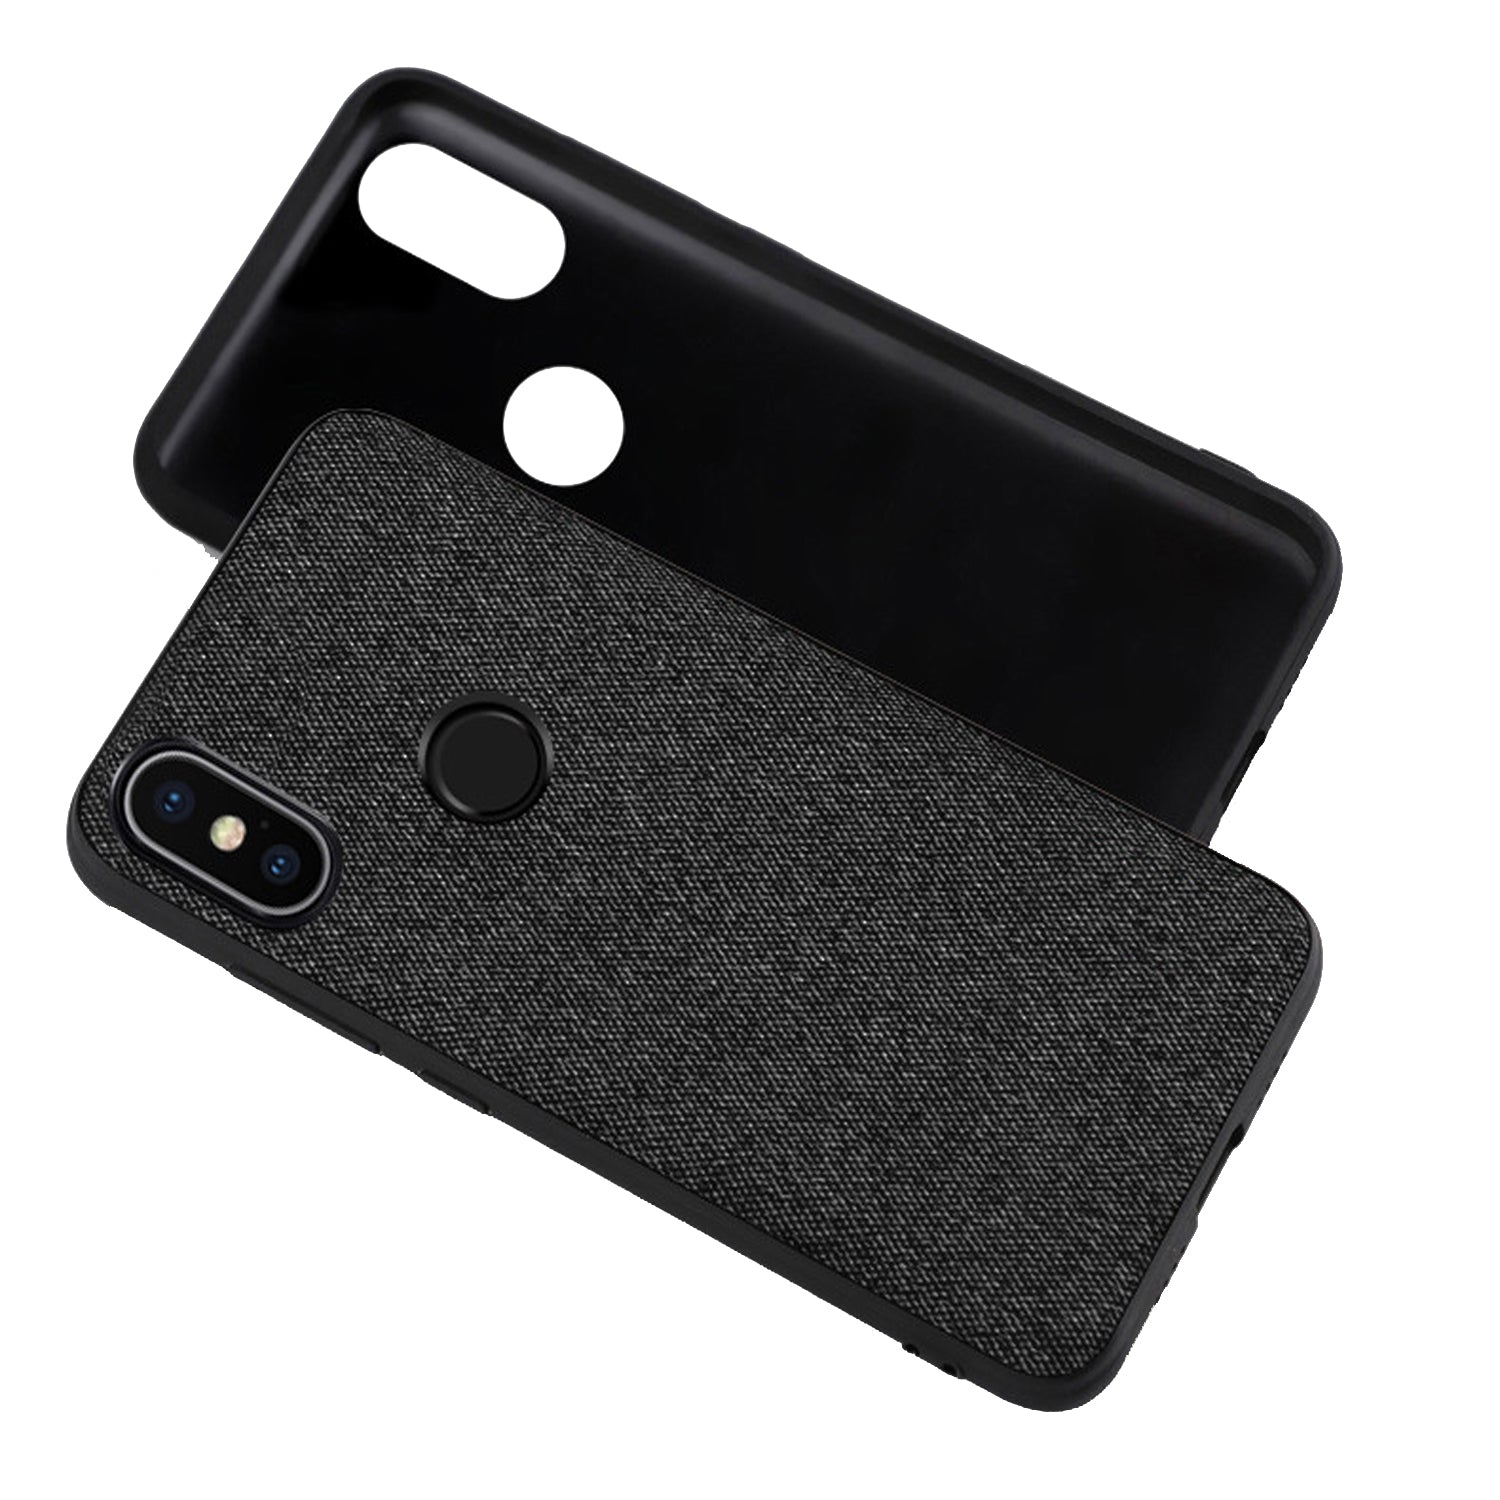 Fabric Hybrid Protective Case Cover for Xiaomi Redmi Note 5 PRO  -  Black - Mobizang